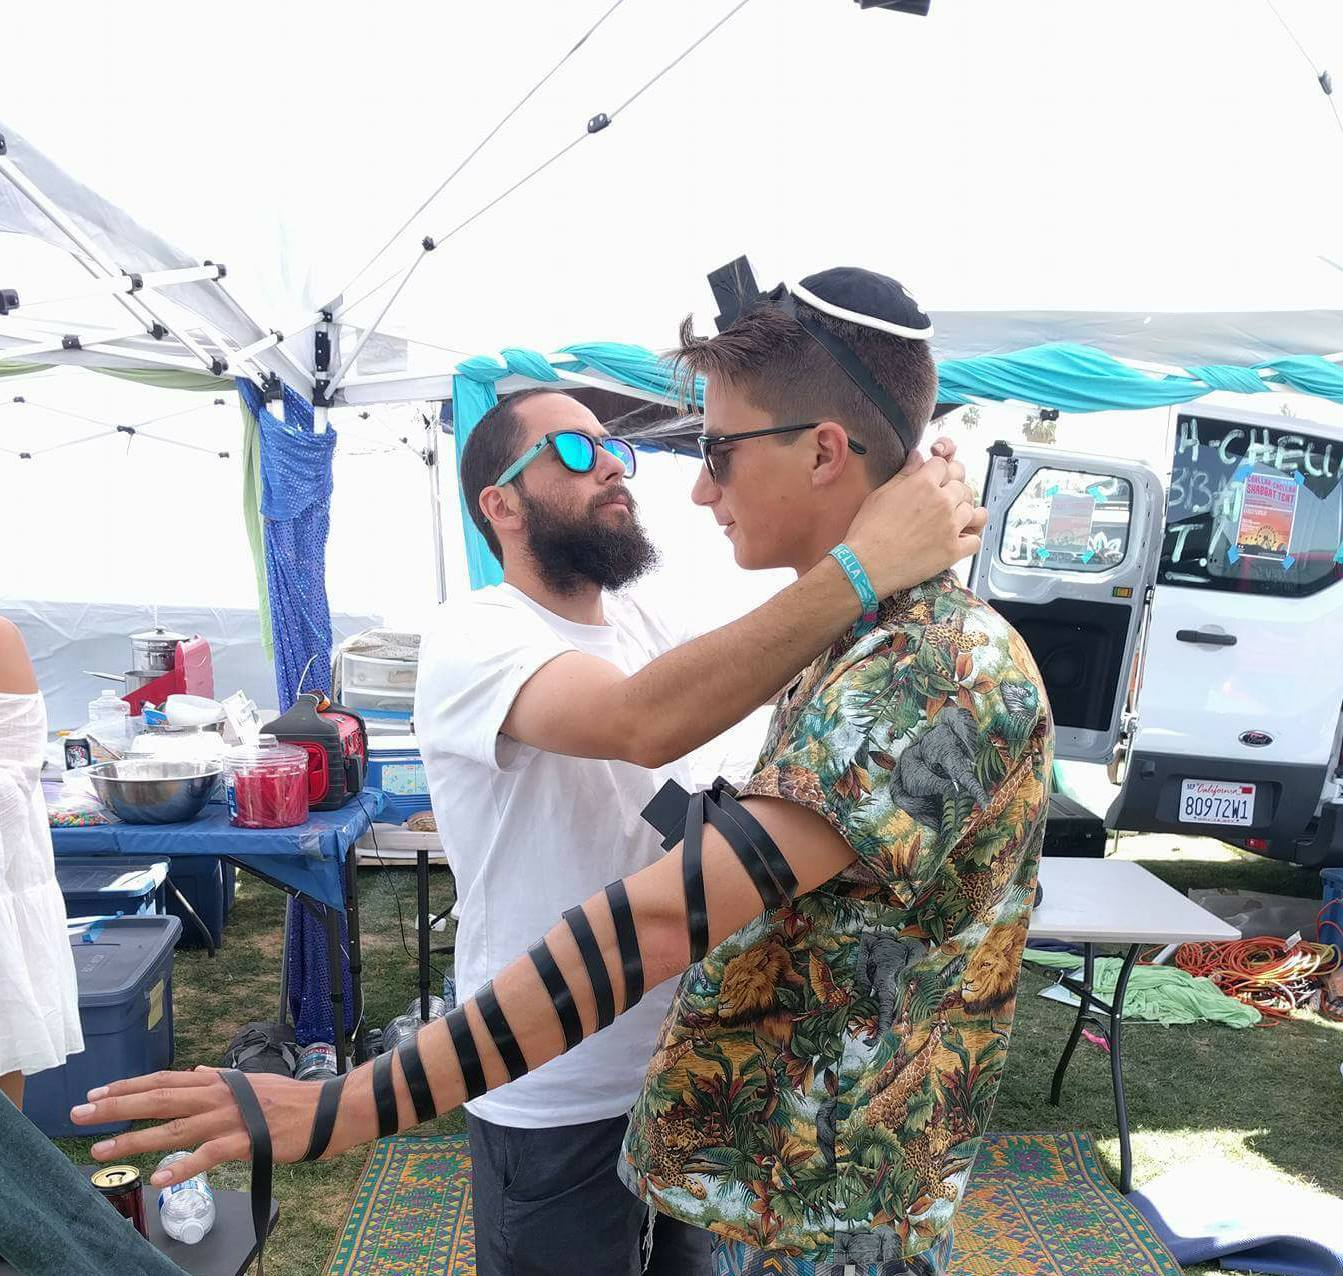 Wrapping Tefillin with a visitor at the Coachella Music Festival.